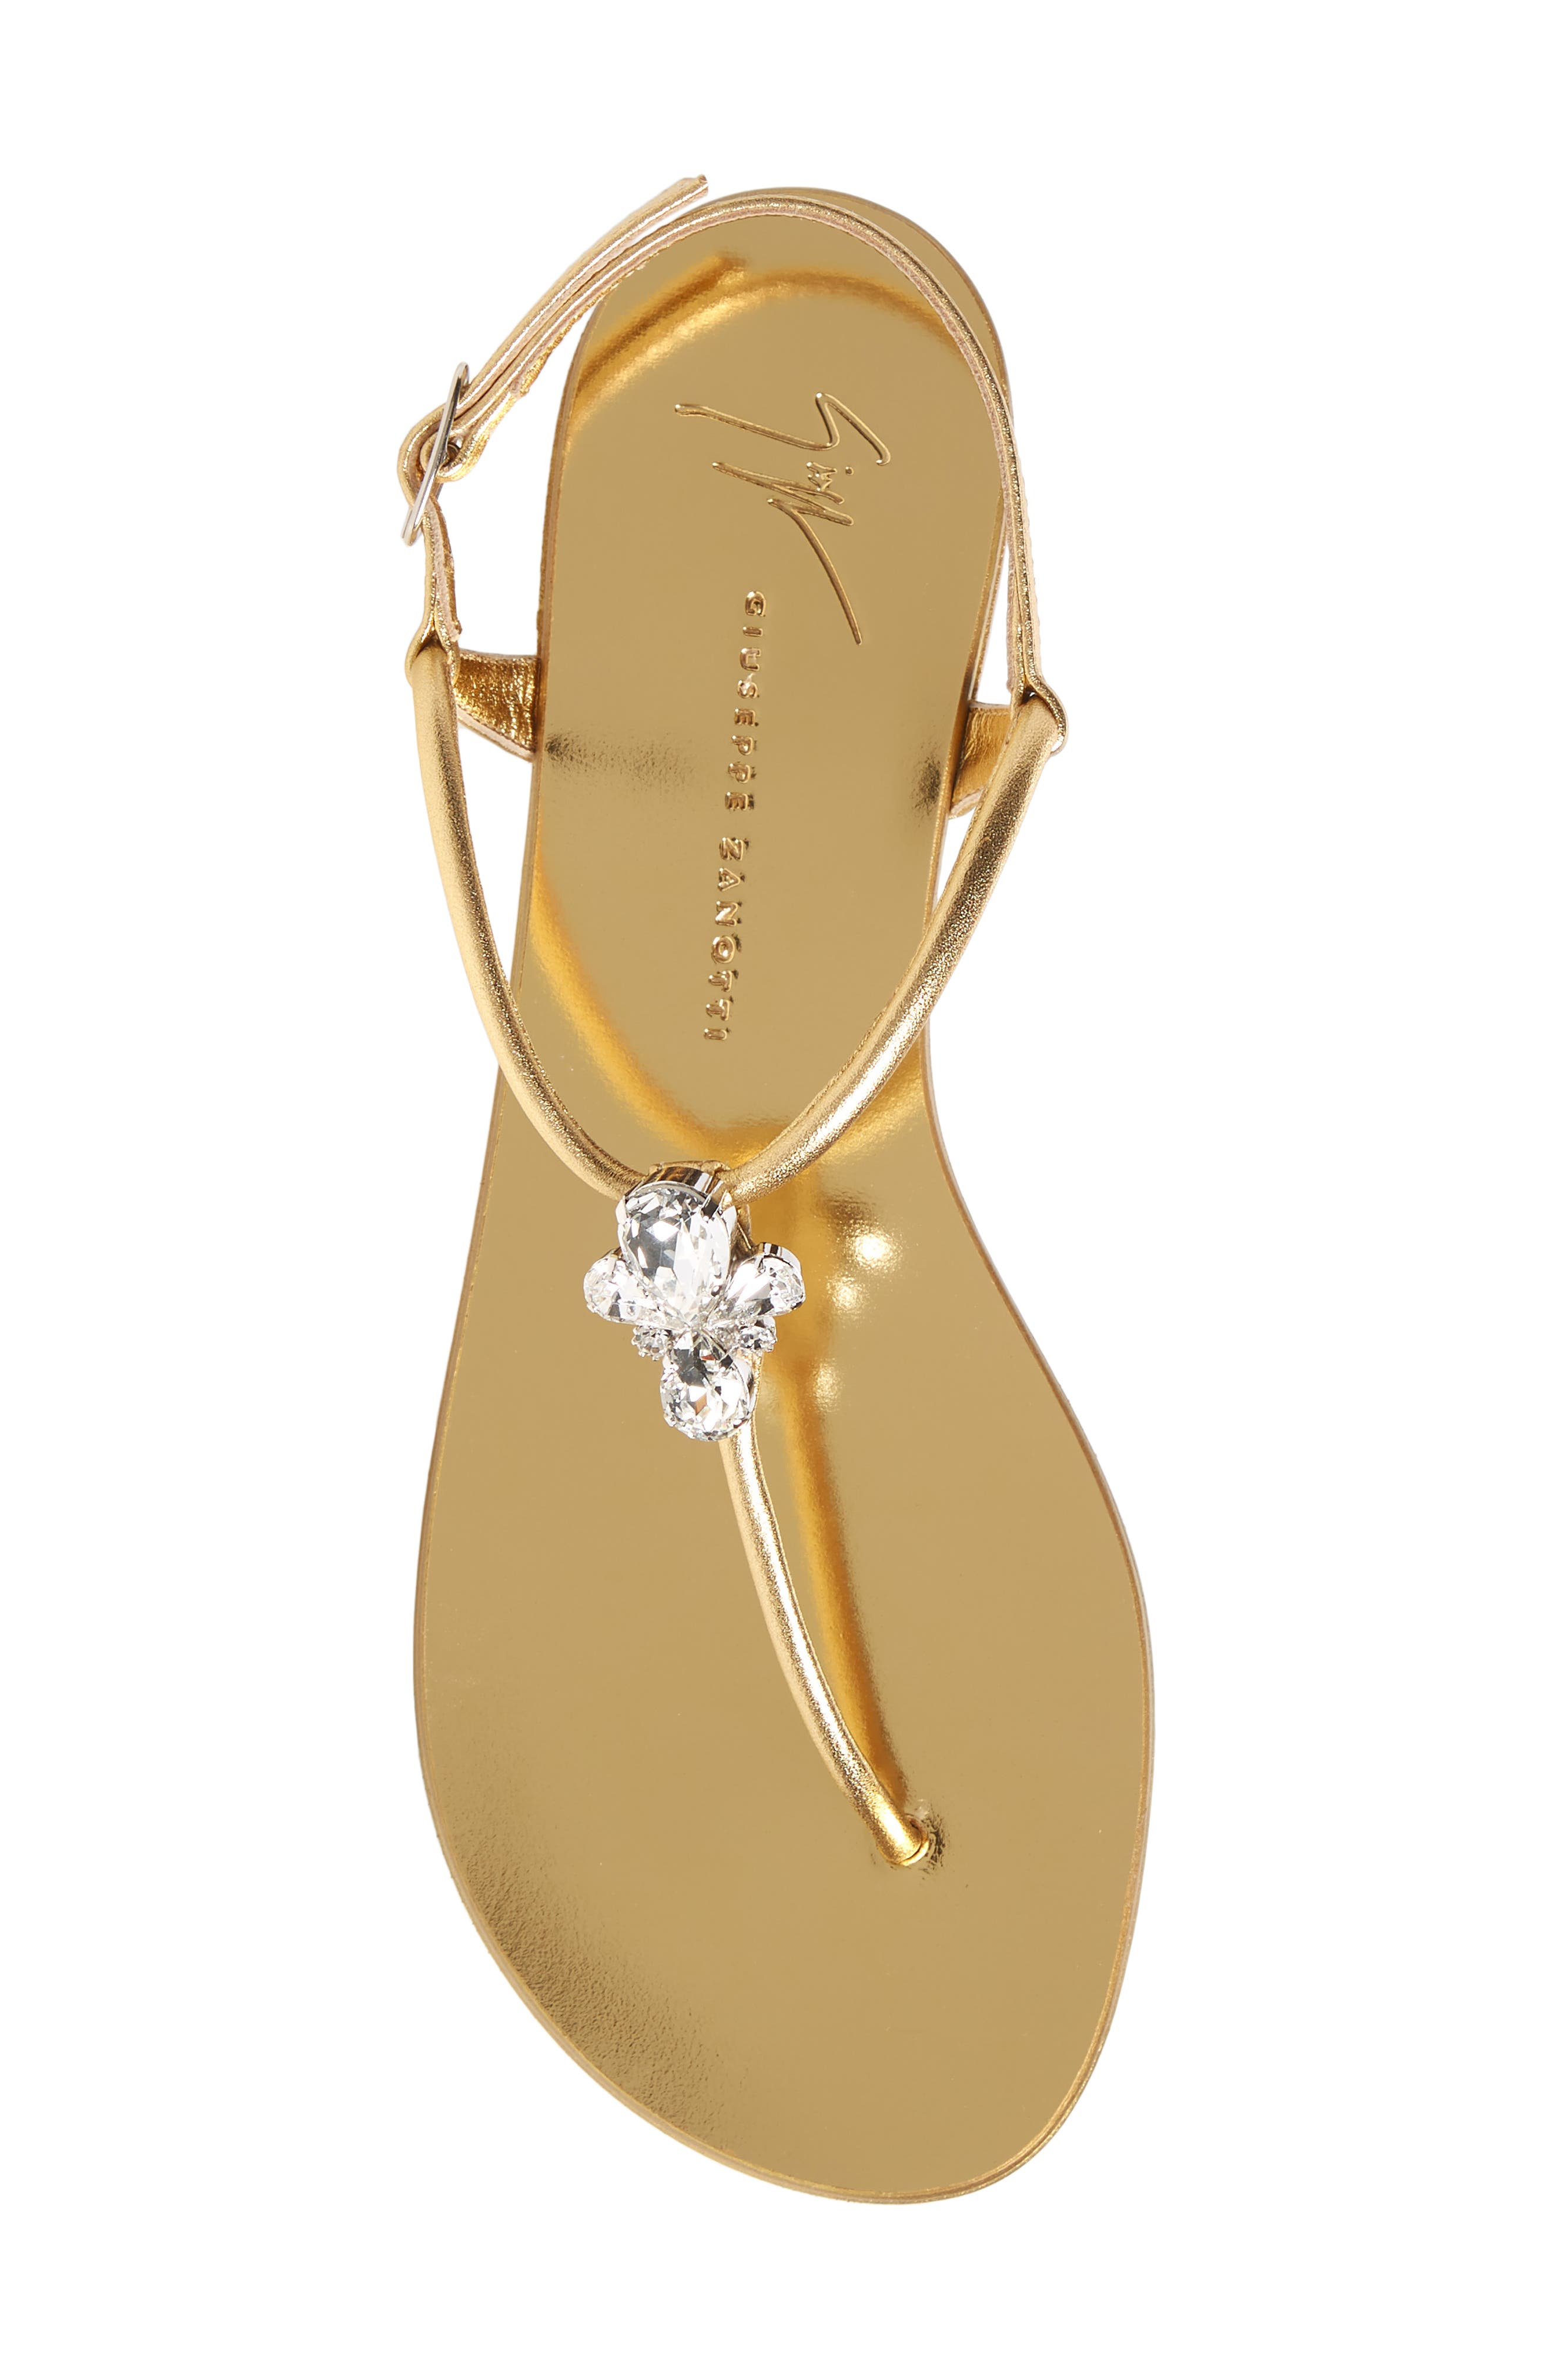 Crystal T-Strap Sandal,                             Alternate thumbnail 5, color,                             GOLD